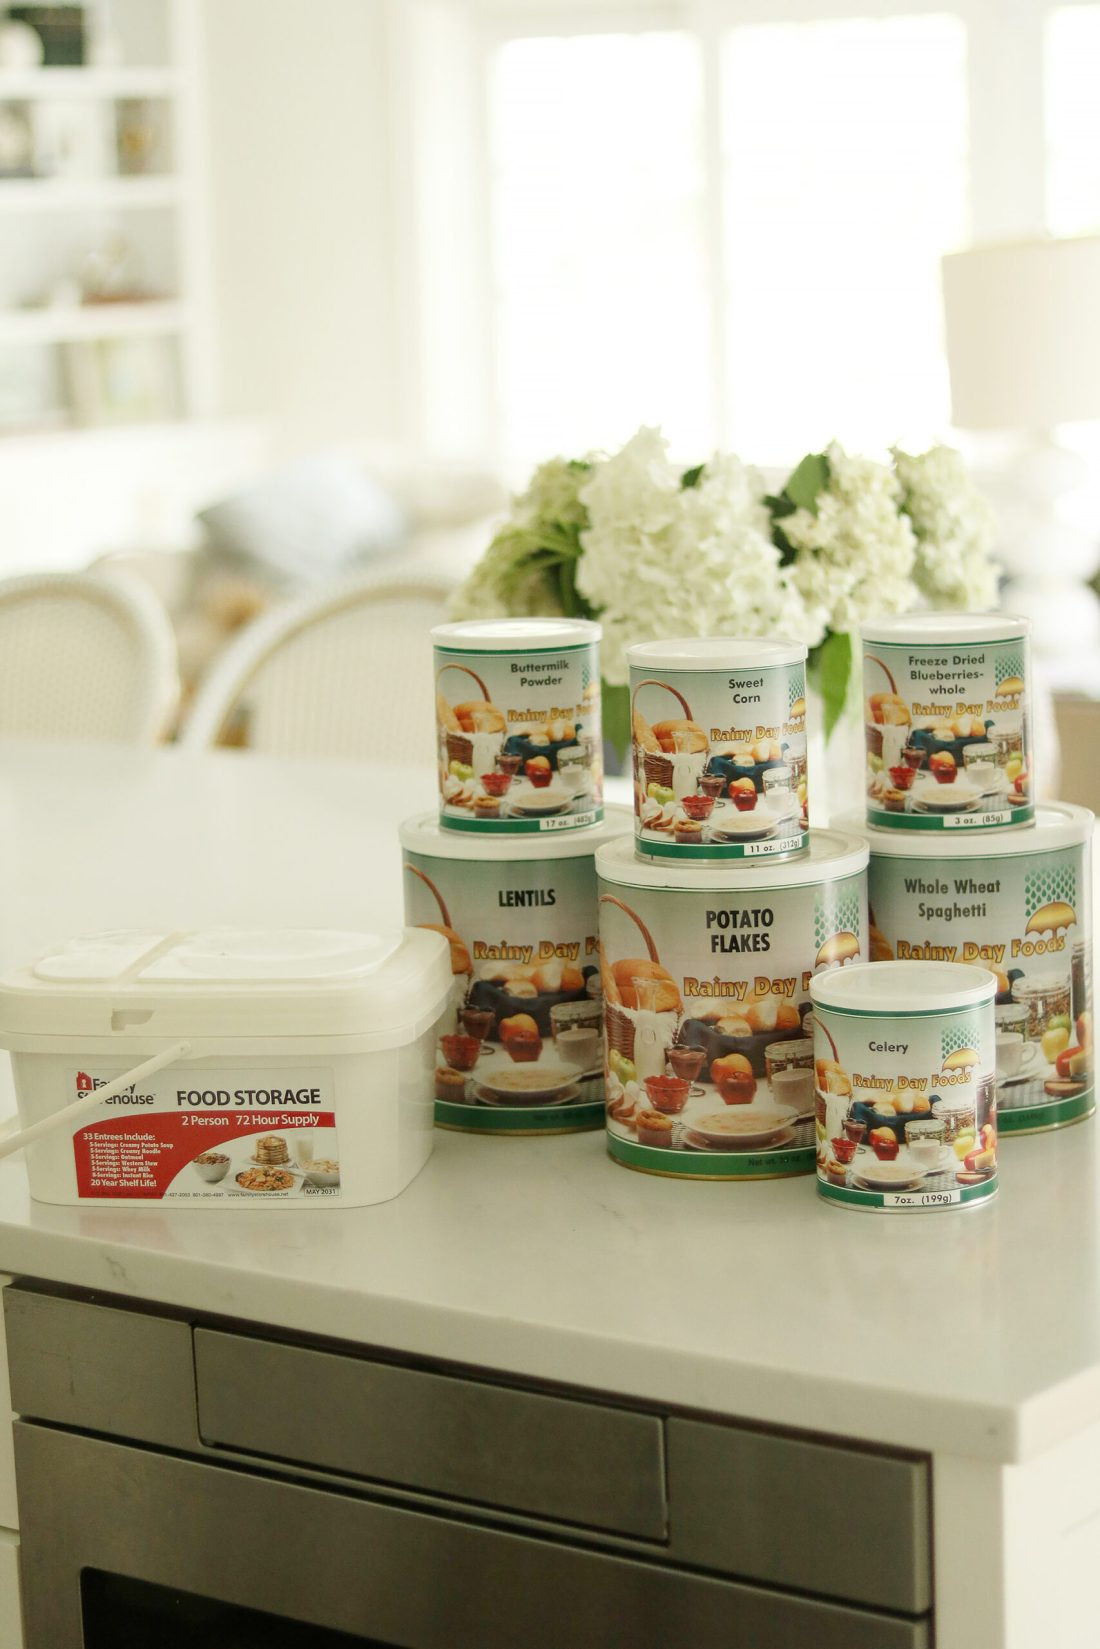 An easy guide to food storage with a free food storage guide to helping you start you own food storage and being prepared for you and your family || Darling Darleen Top CT Lifestyle Blogger #foodstorage